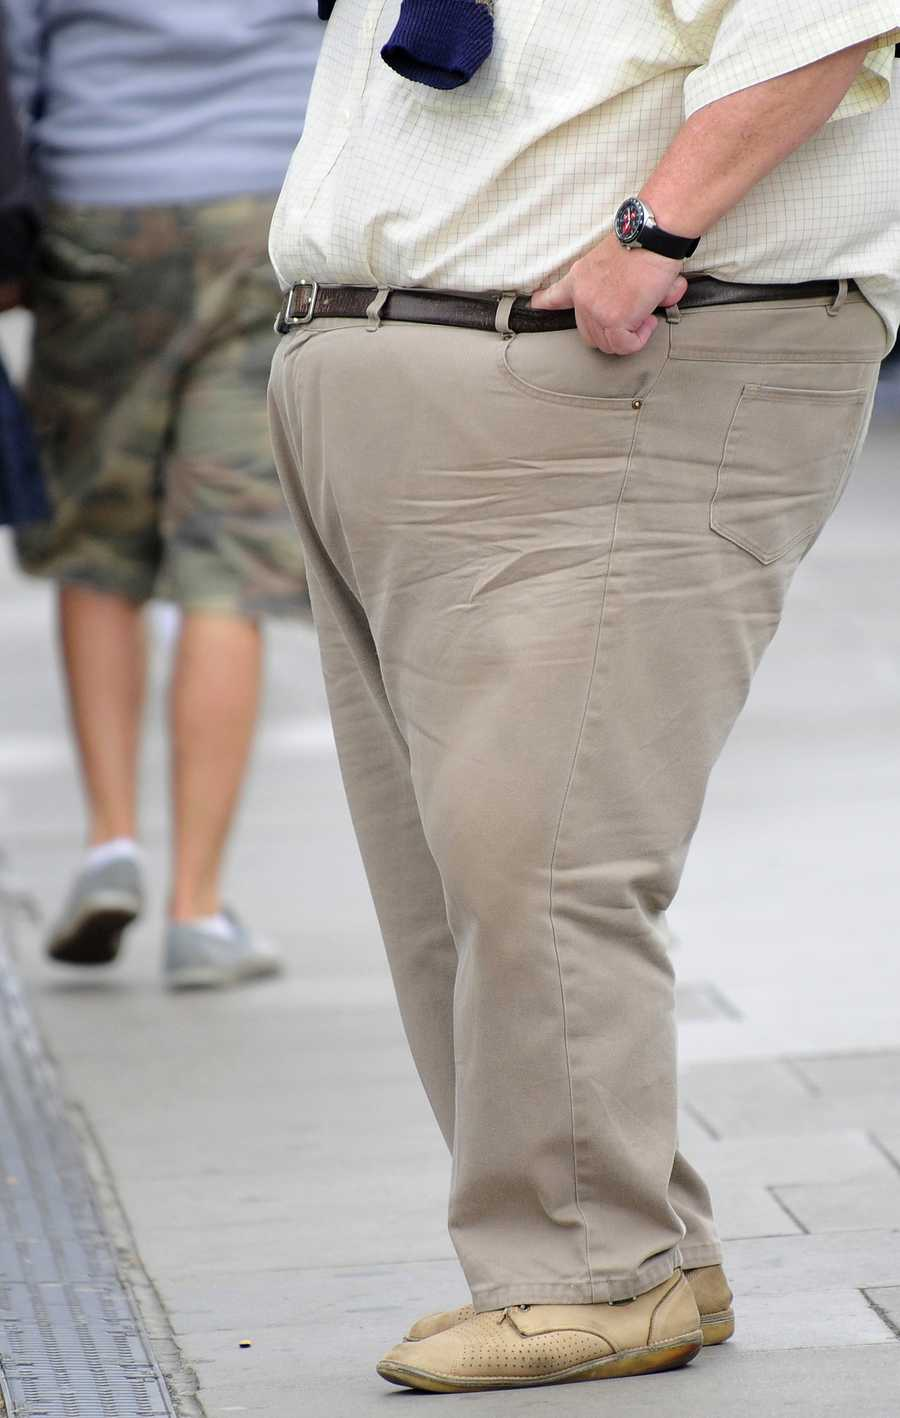 Long hours at at your high-stress job may be to blame for your expanding waistline...